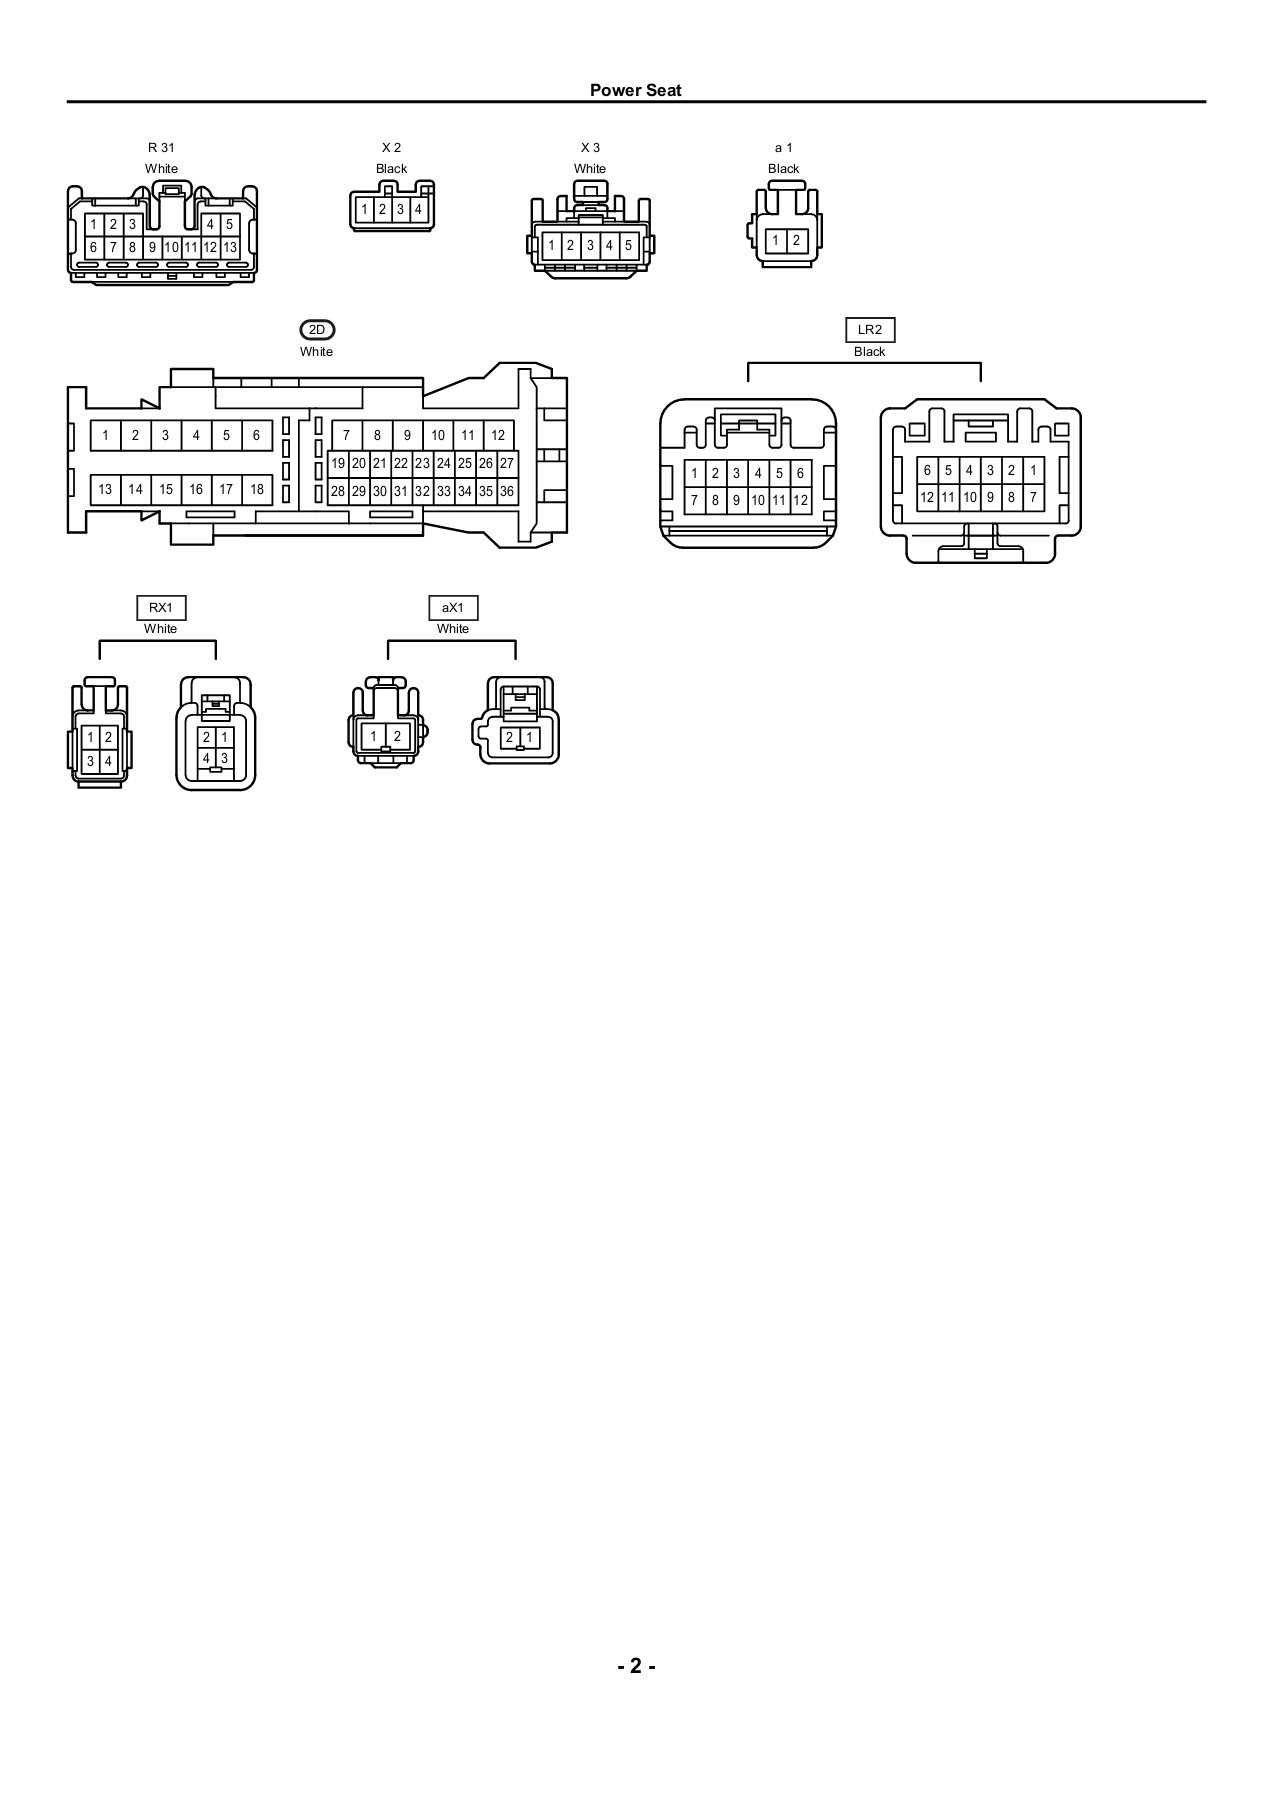 toyota prius 2010 electrical wiring diagrams pages 351 400 text version fliphtml5 [ 1273 x 1800 Pixel ]